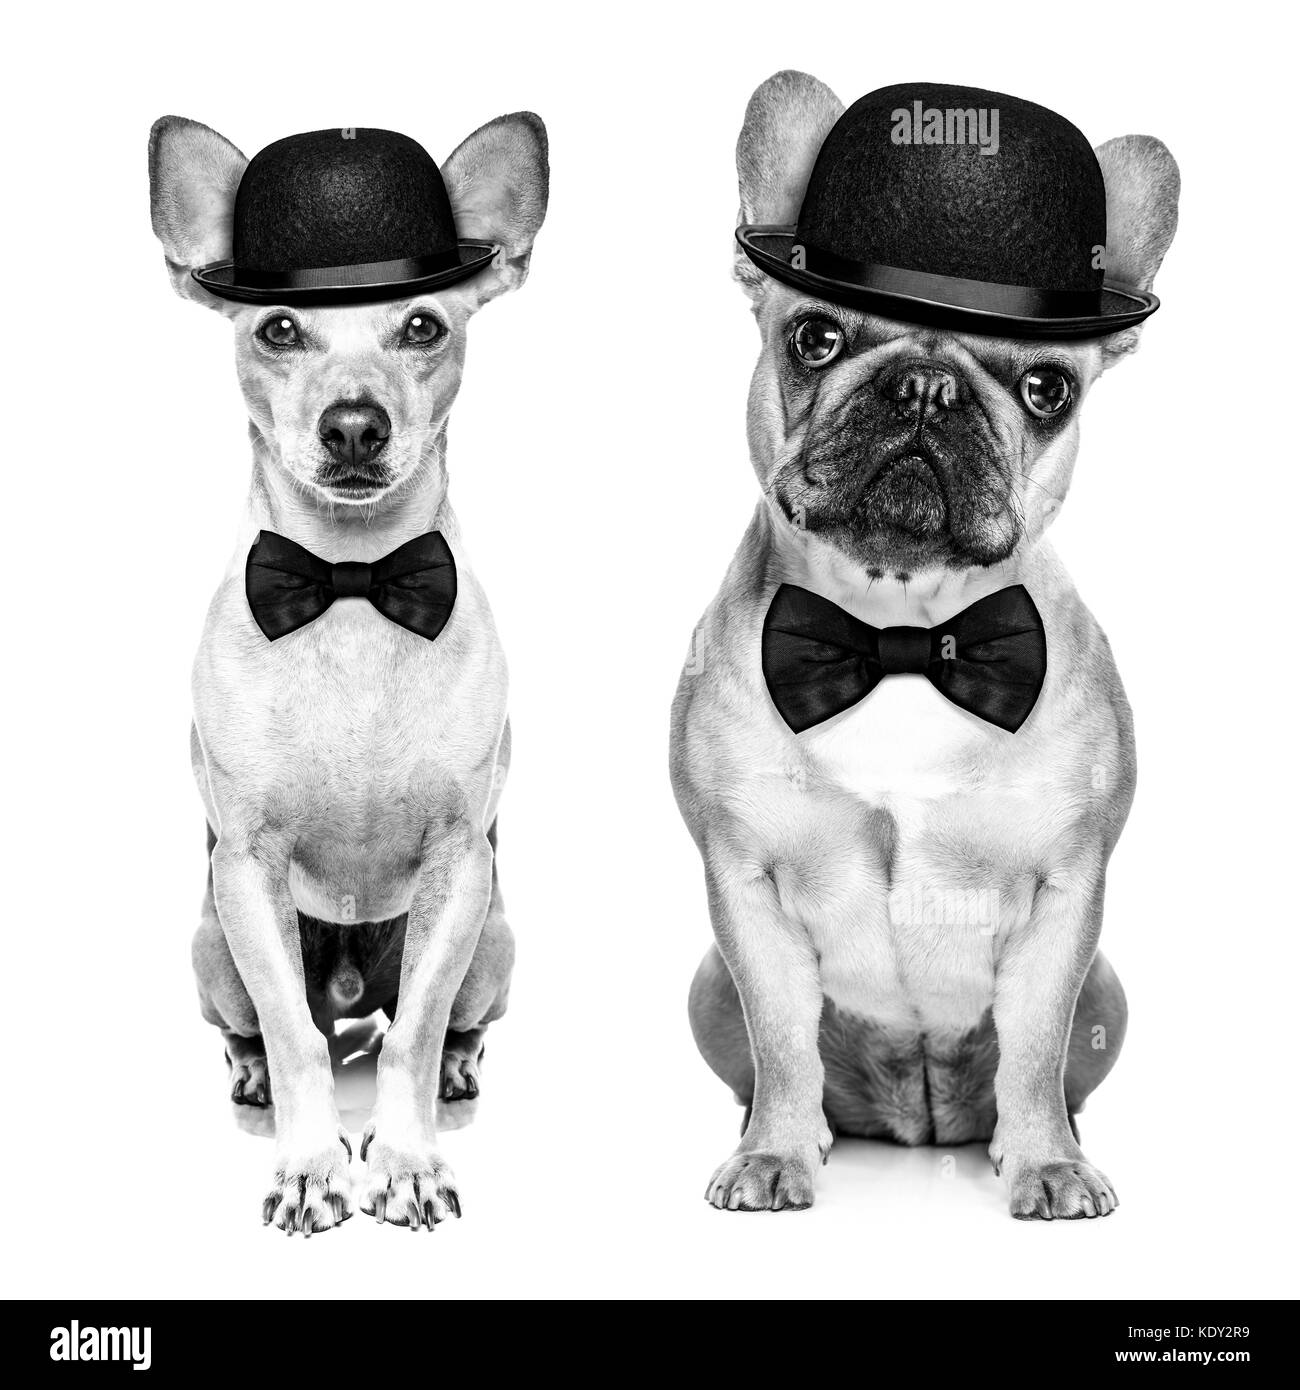 comedian classic couple of dogs wearing a bowler hat and black tie  isolated on white background.In black and white - Stock Image